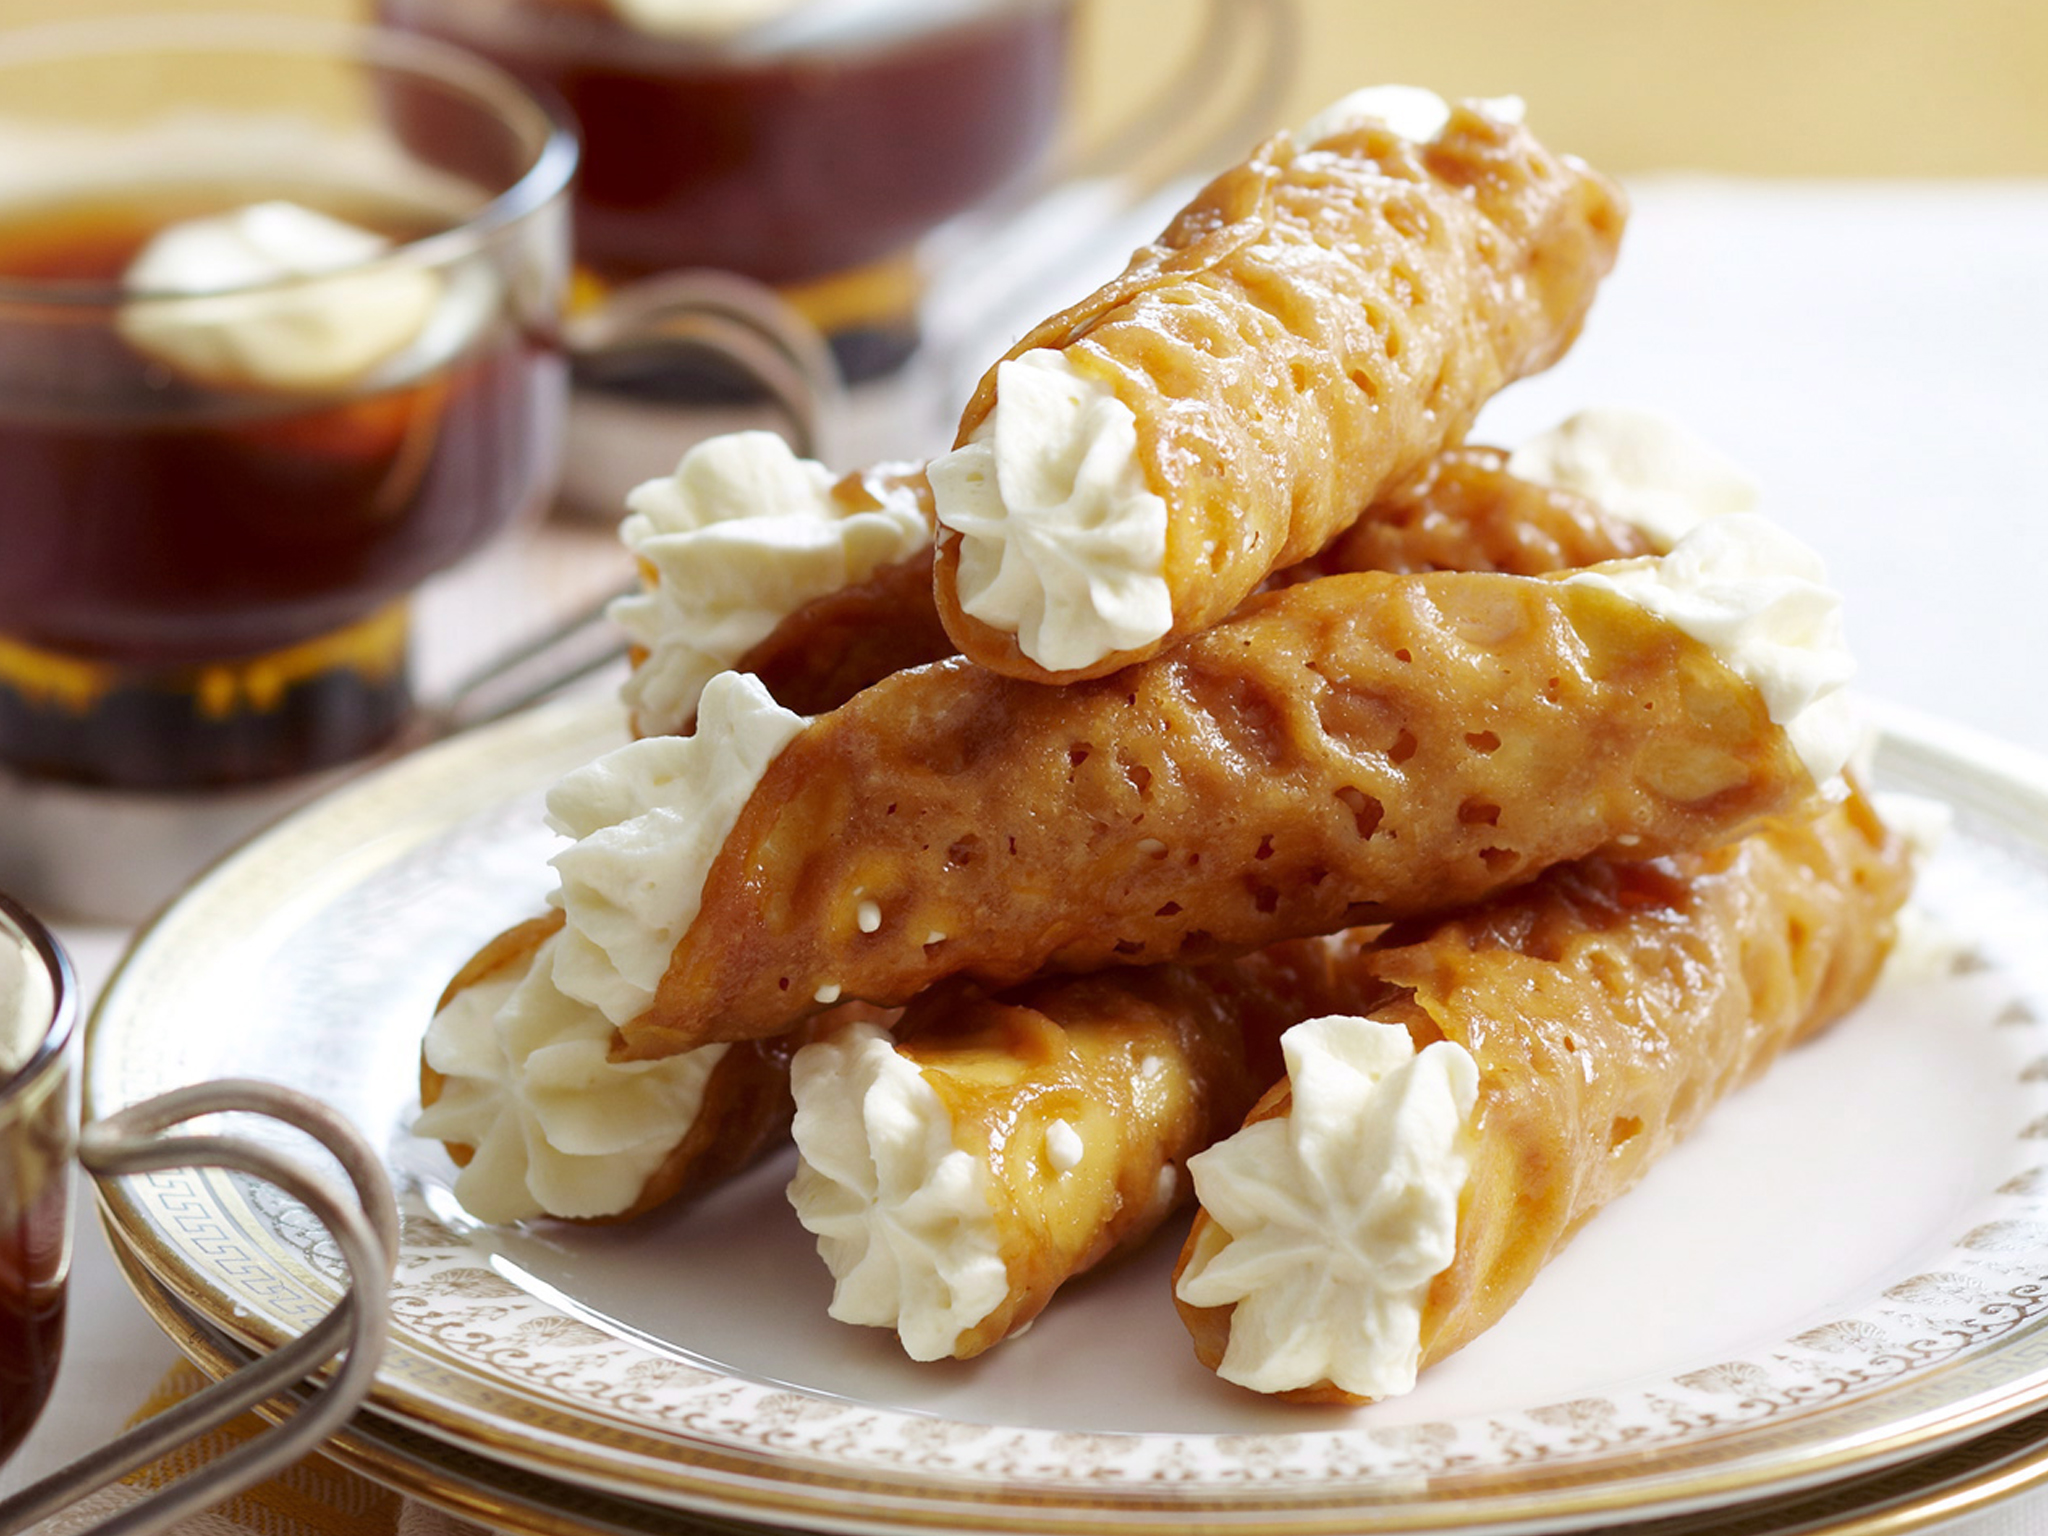 Everyday Food - Retro Food - Retro Dinner Party - Brandy Snaps